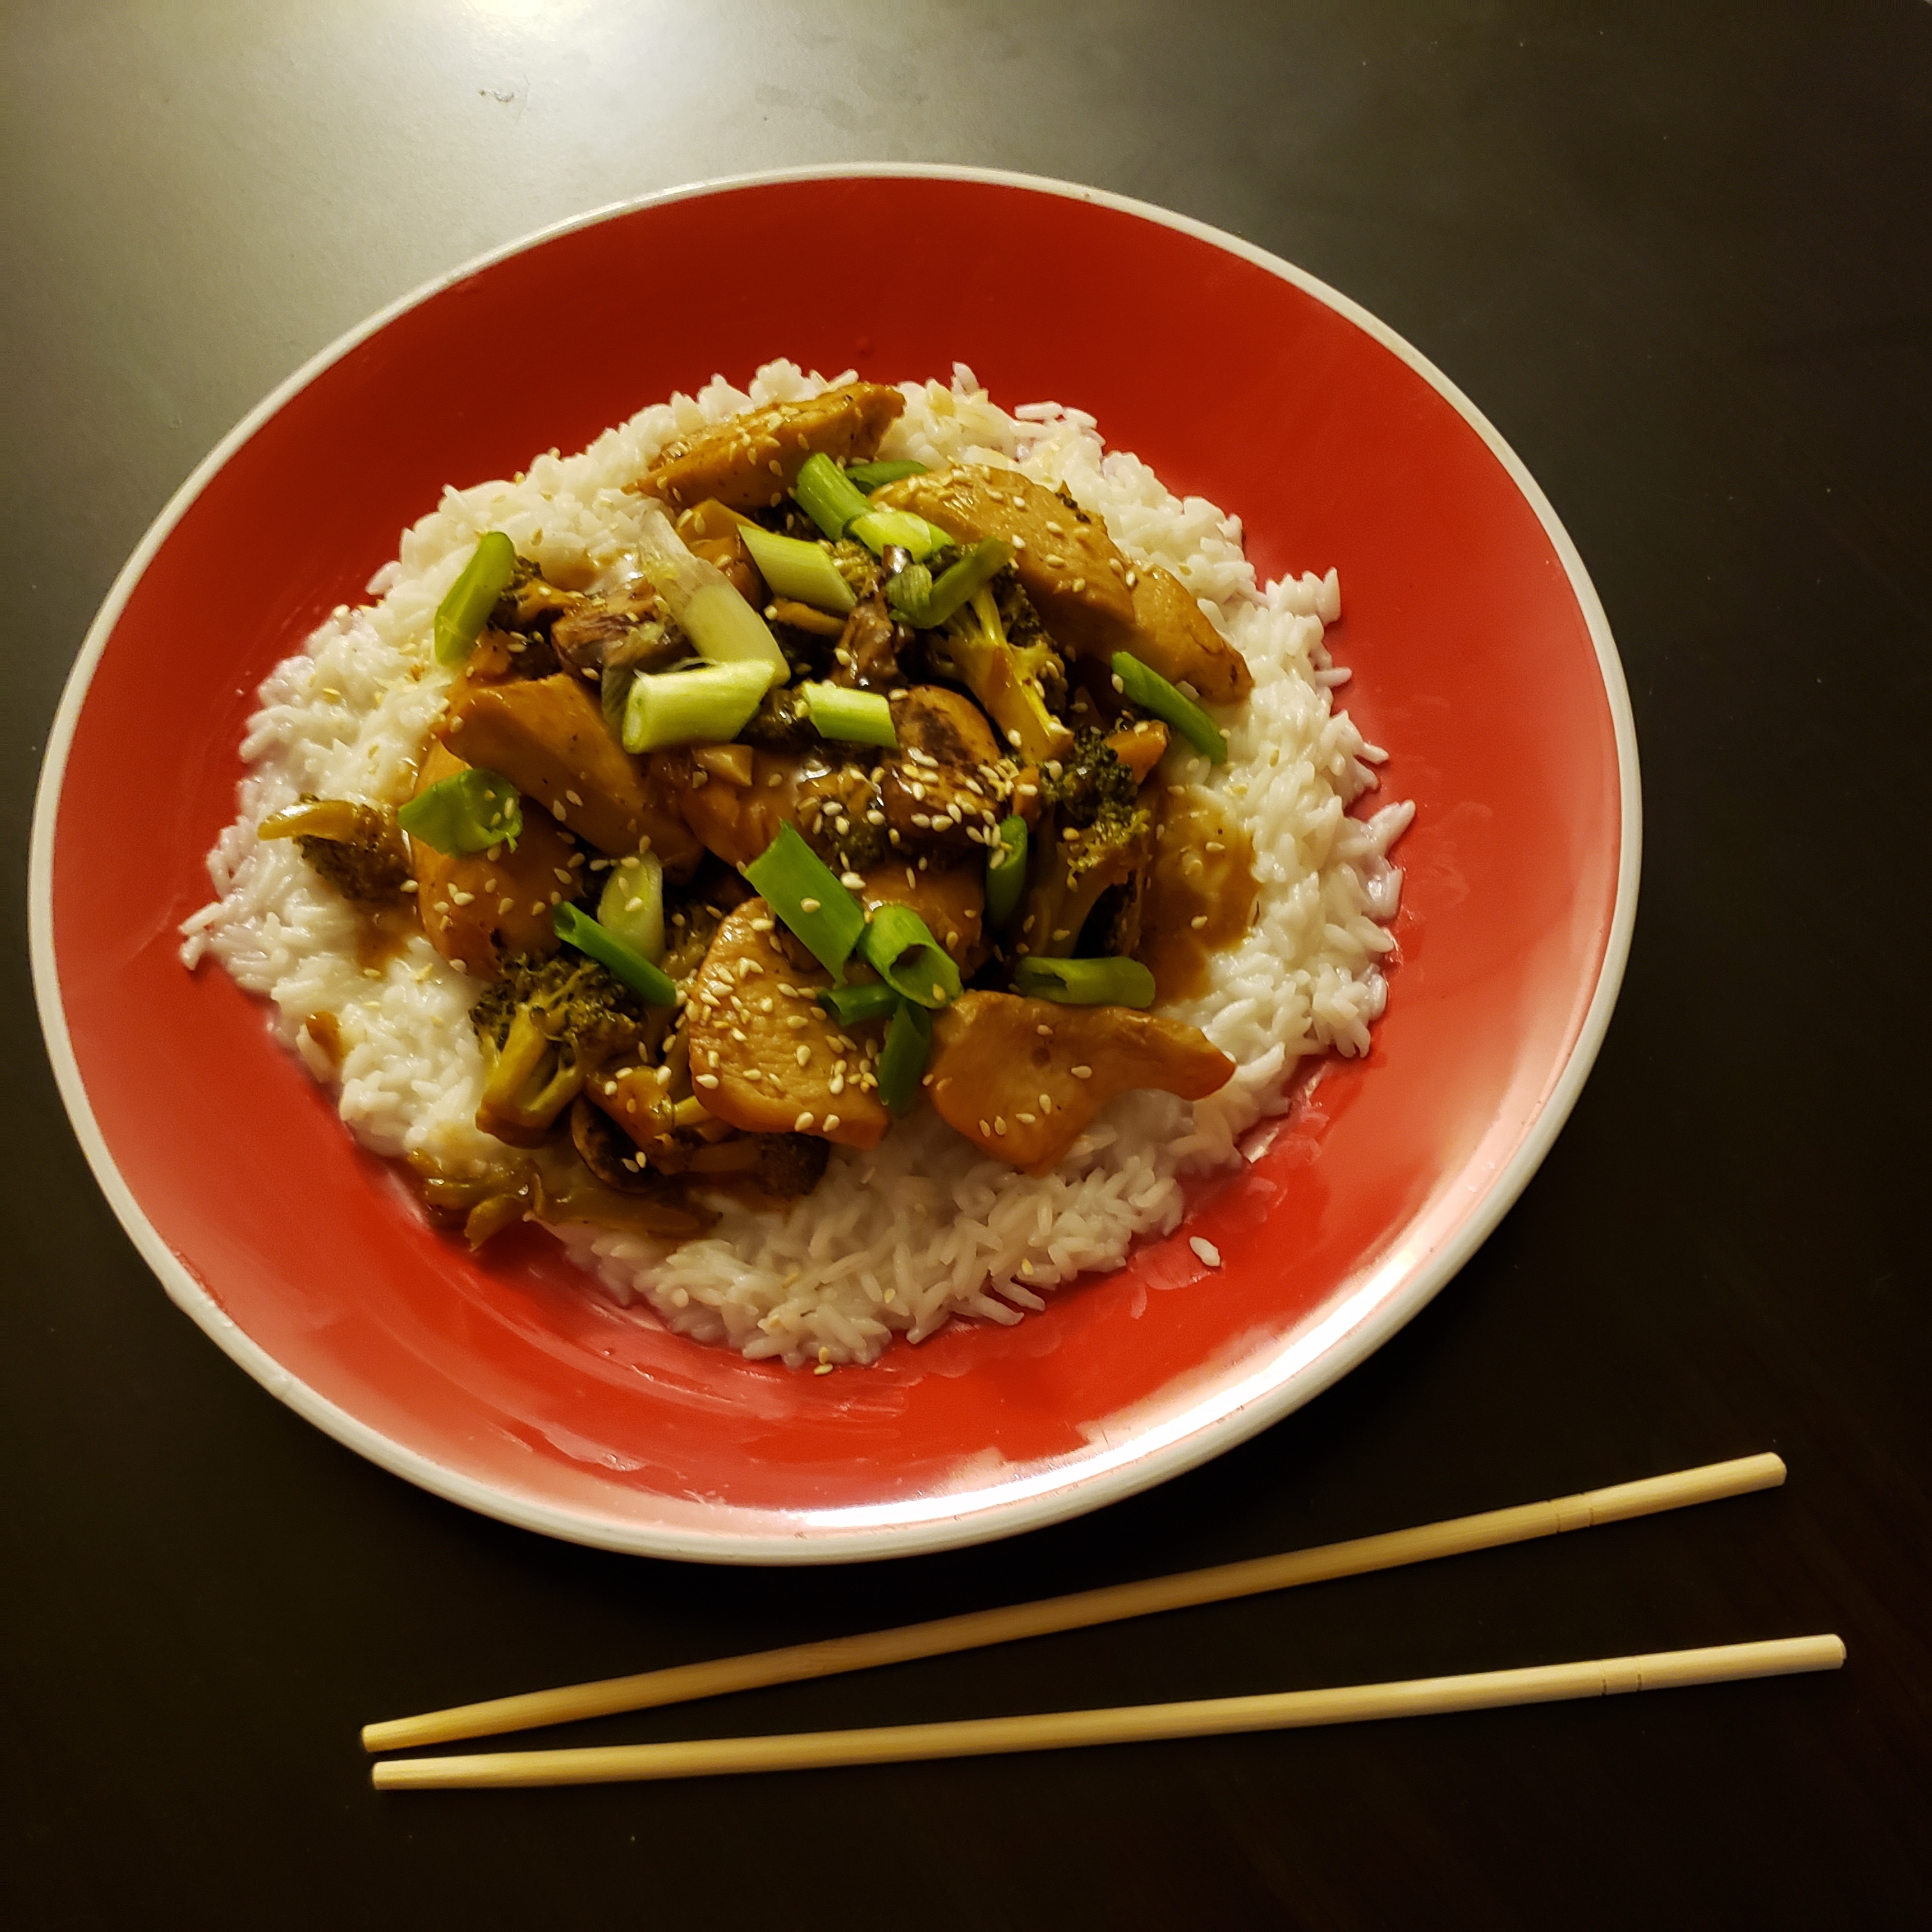 Teriyaki Chicken with Mushrooms and Broccoli Michael Genson